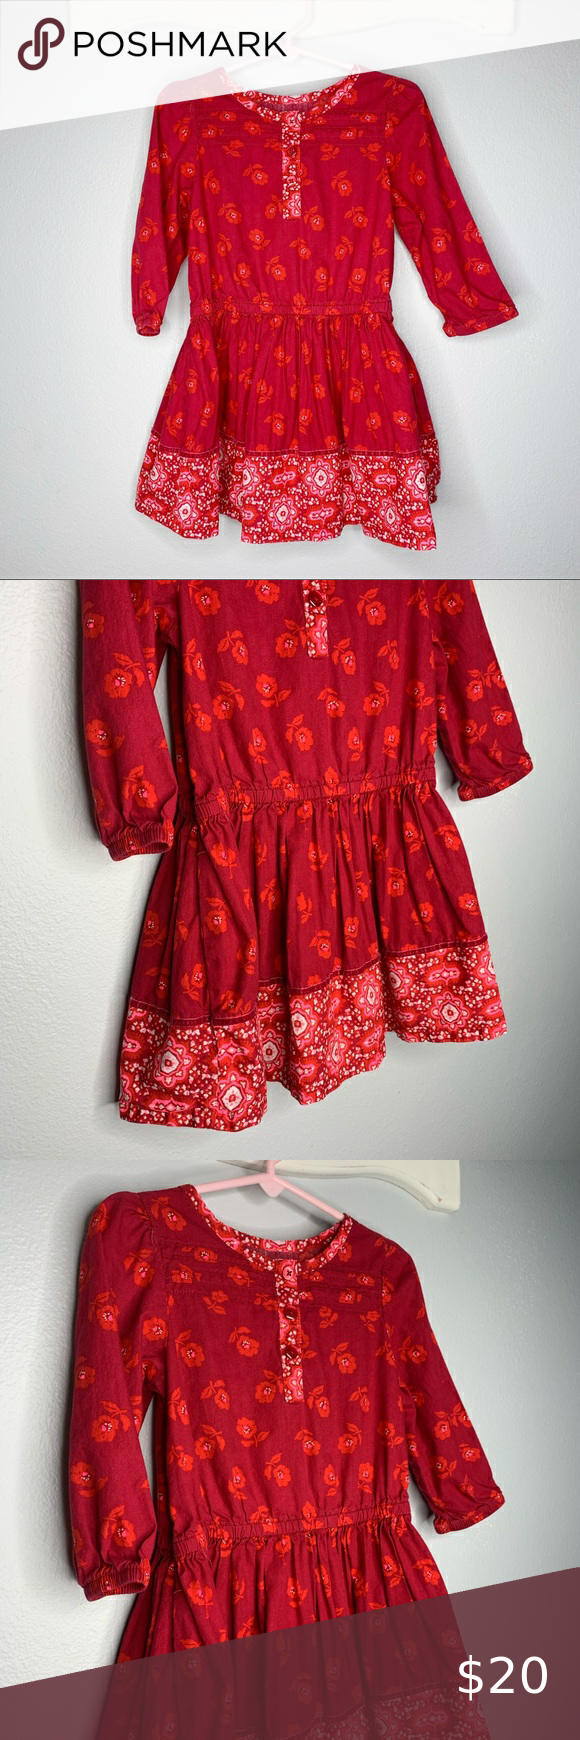 Toddler Girls Shine Plaid Long Sleeve Dress Art Class Maroon 4t Red Clothes Long Sleeve Dress Toddler Girl Outfits [ 1000 x 1000 Pixel ]